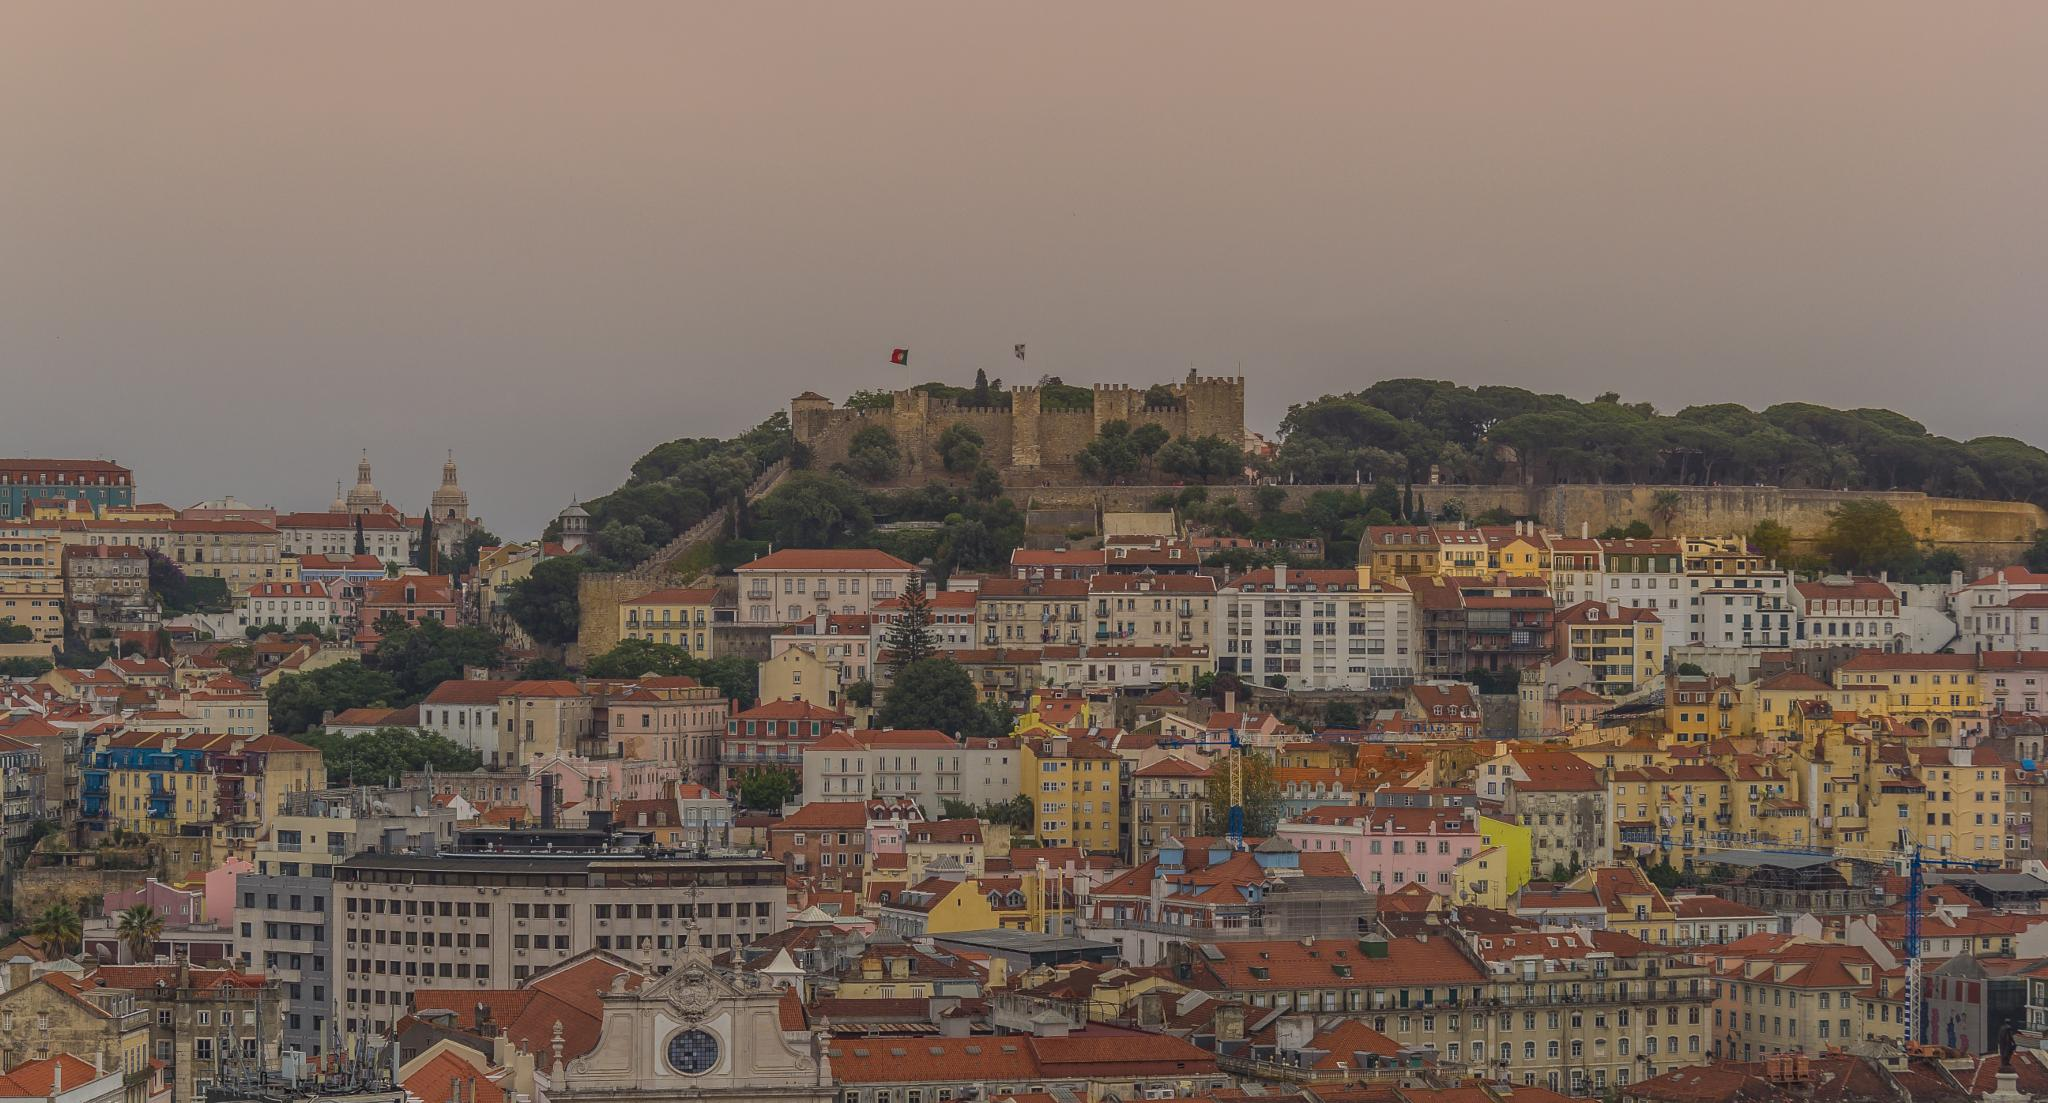 Old Lisbon by Nuno Dias